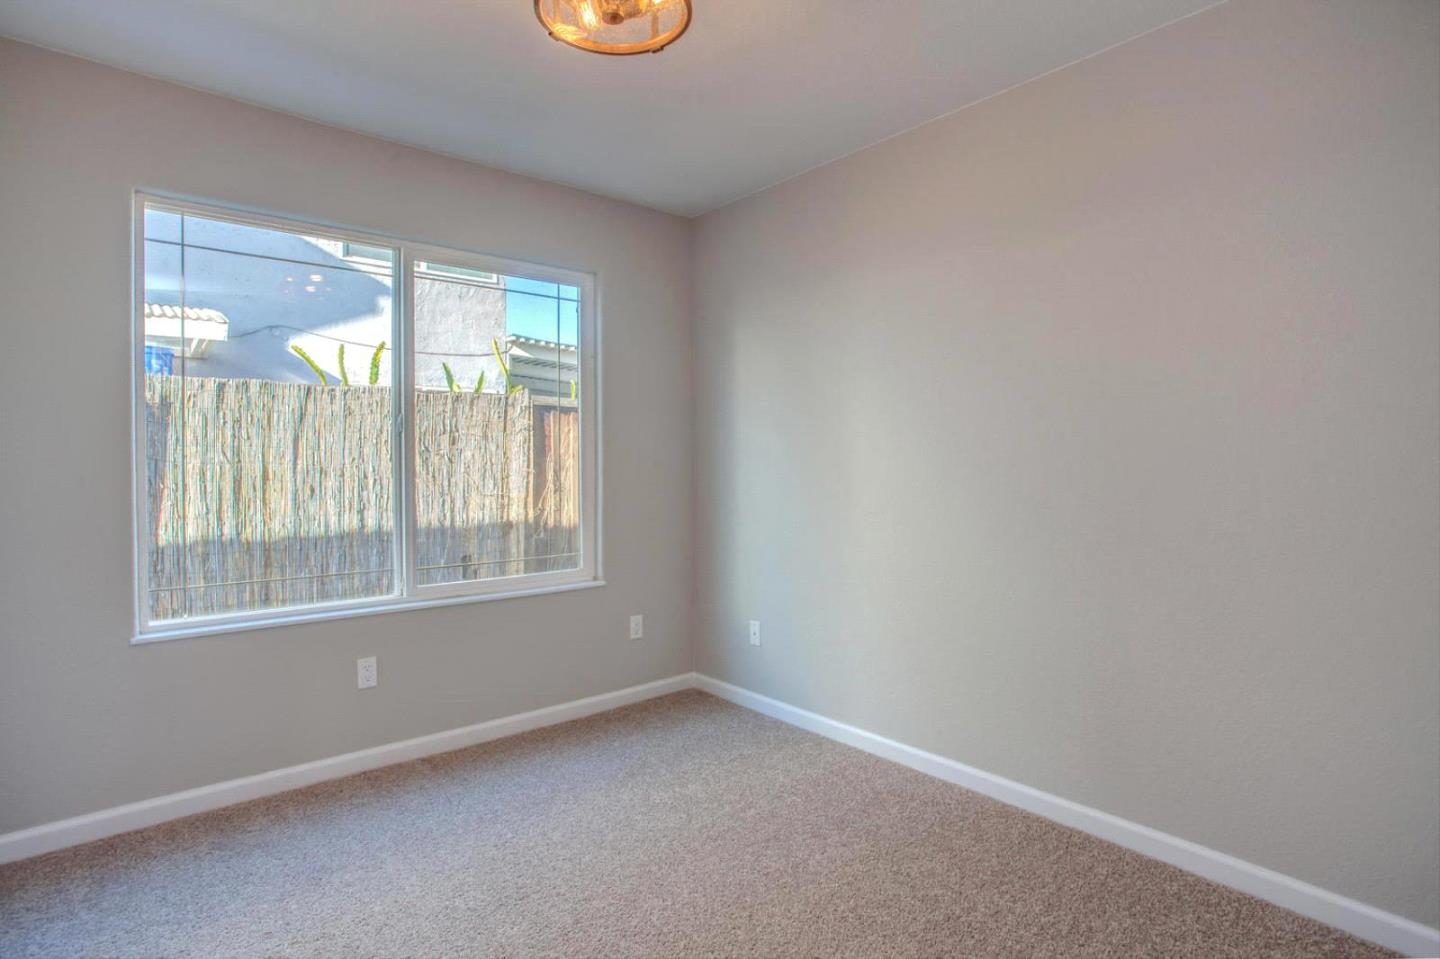 Additional photo for property listing at 5096 Bougainvillea Drive  San Jose, Californie 95111 États-Unis